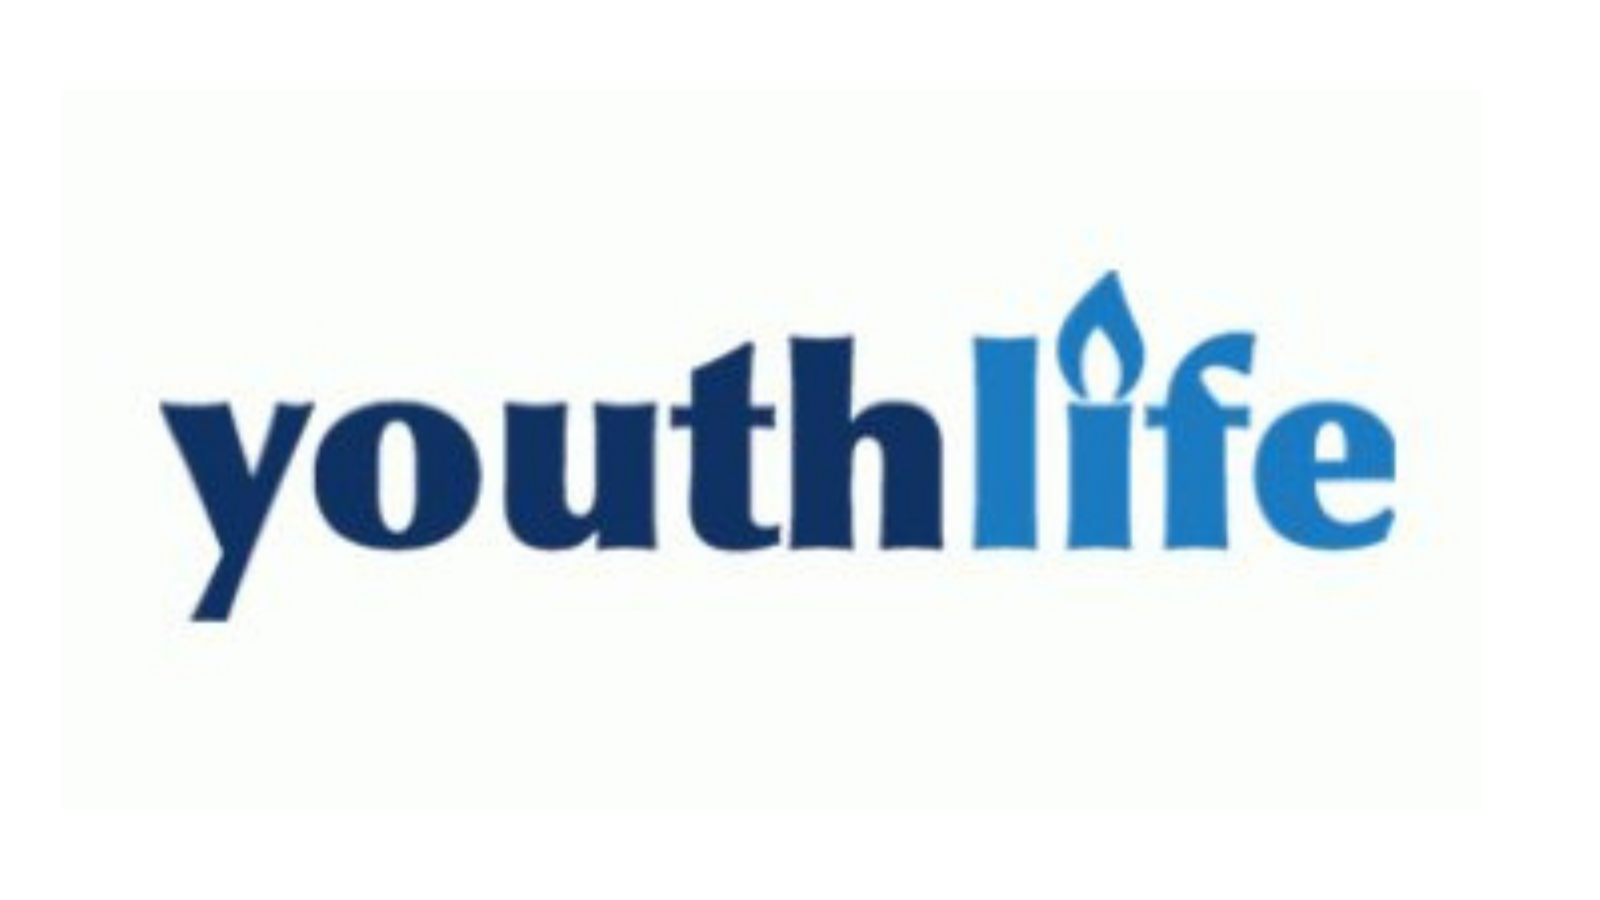 Youthlife